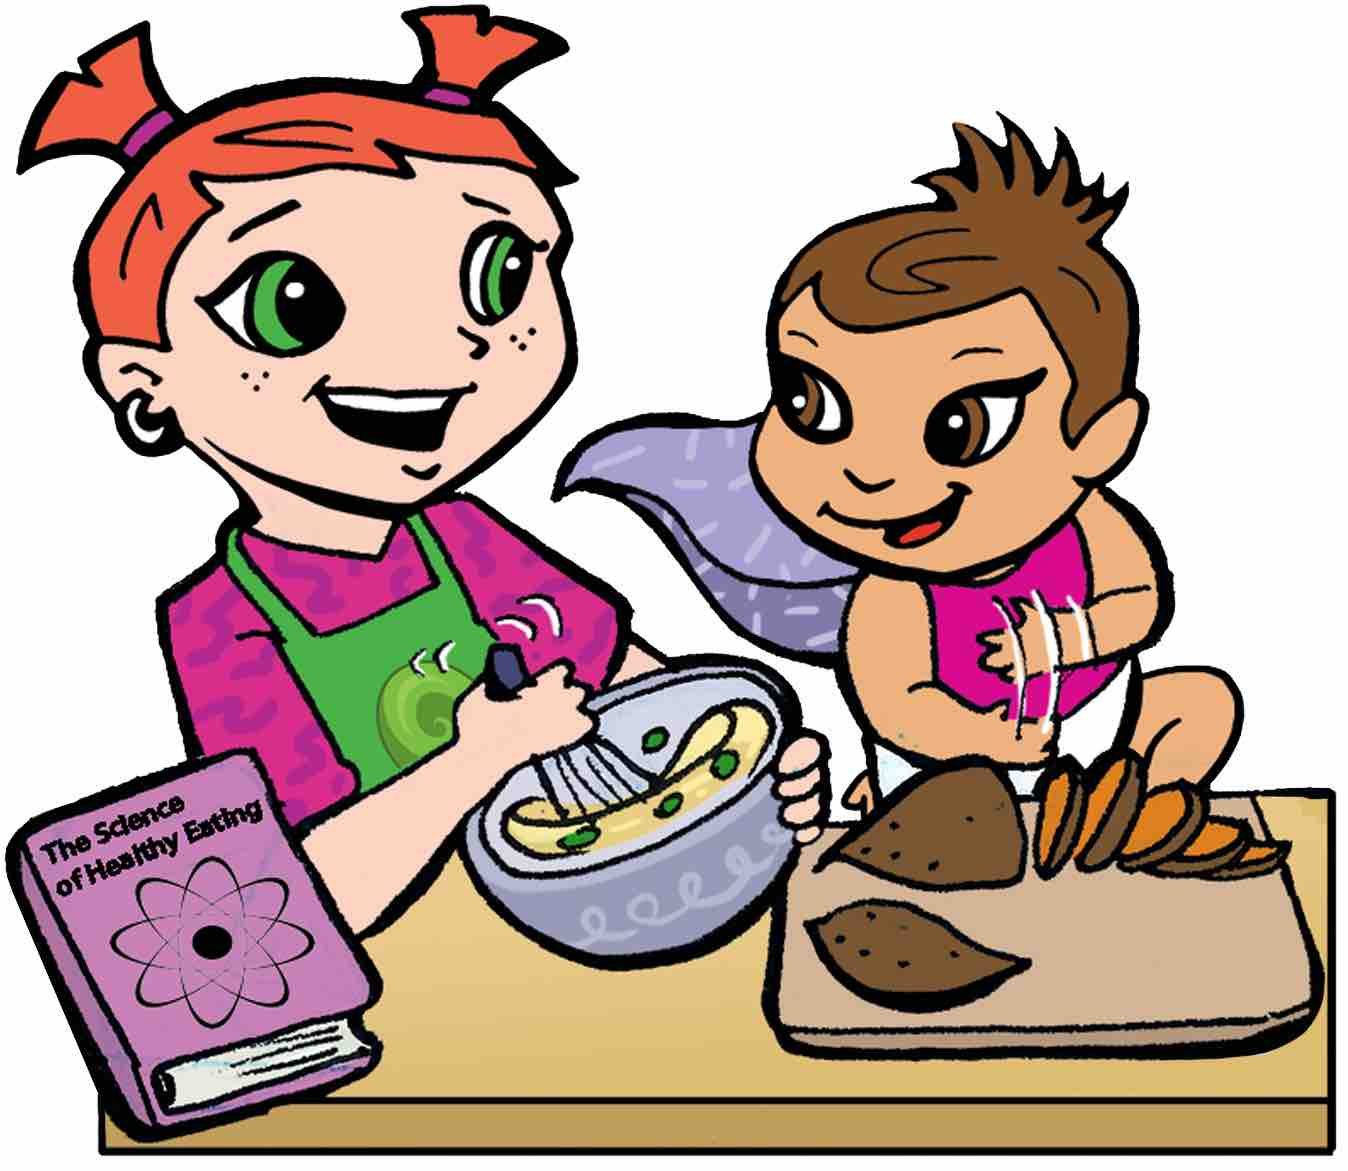 Super Crew characters Jessie and Super Baby Abigail cooking together and chopping sweet potatoes